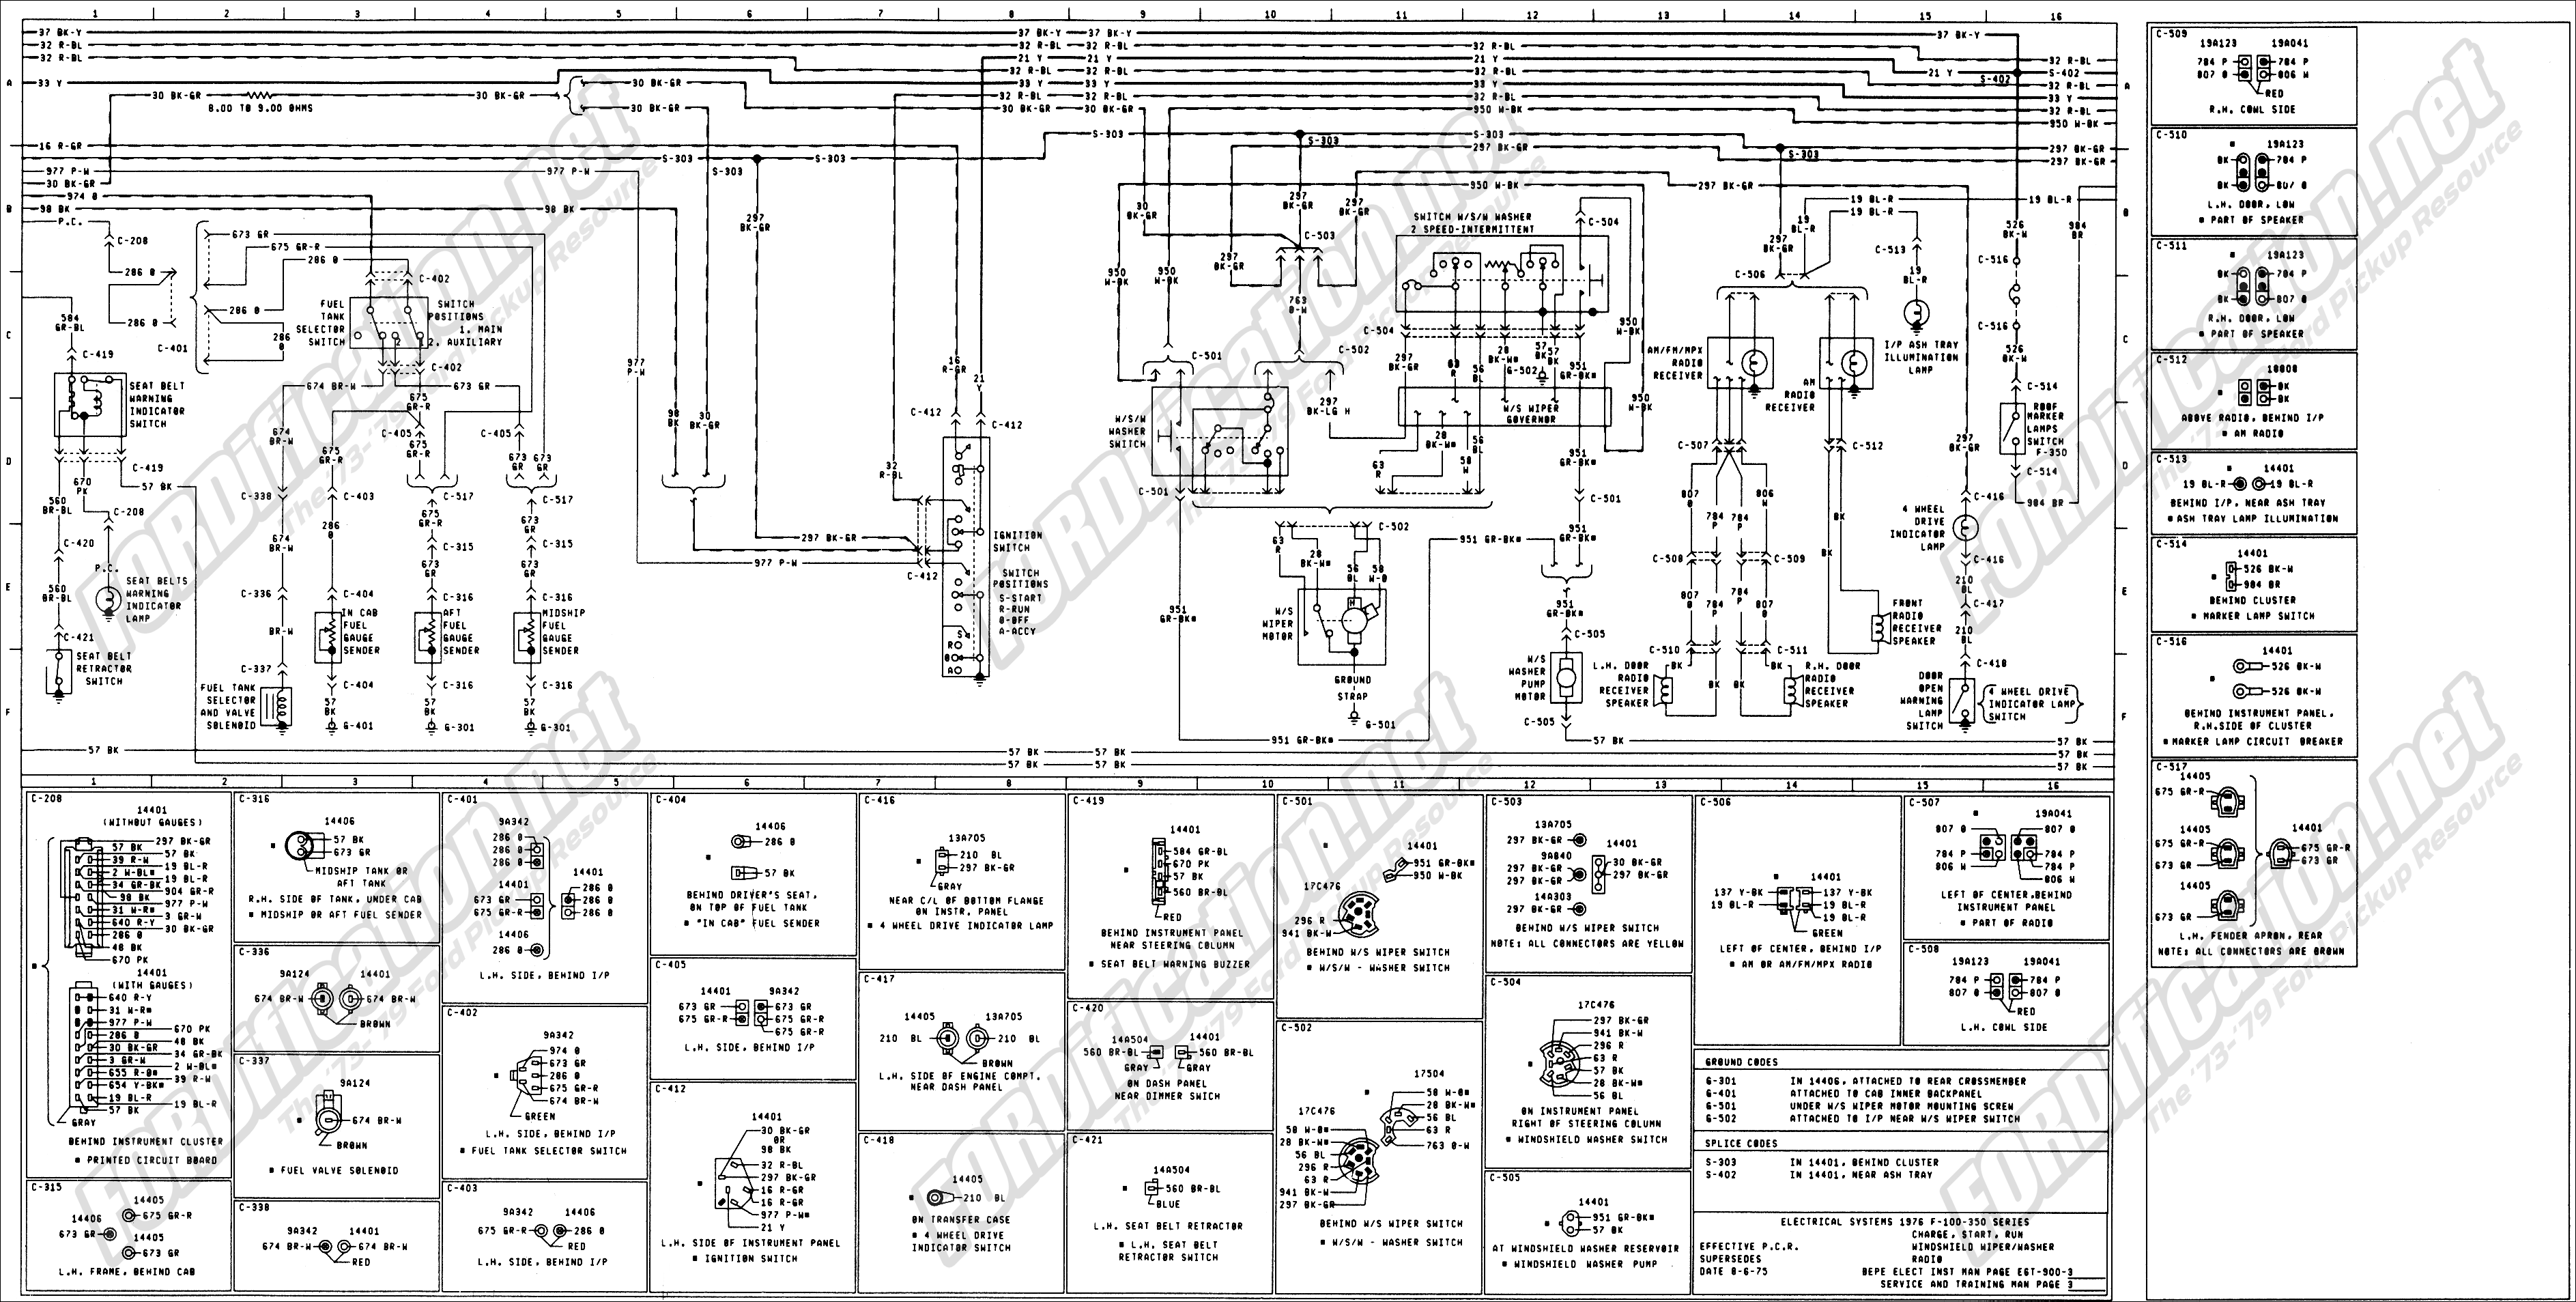 2007 F750 Fuse Diagram Wiring Library 1979 Chevy Custom Deluxe Box 1973 Ford Truck Diagrams Schematics 07 Types